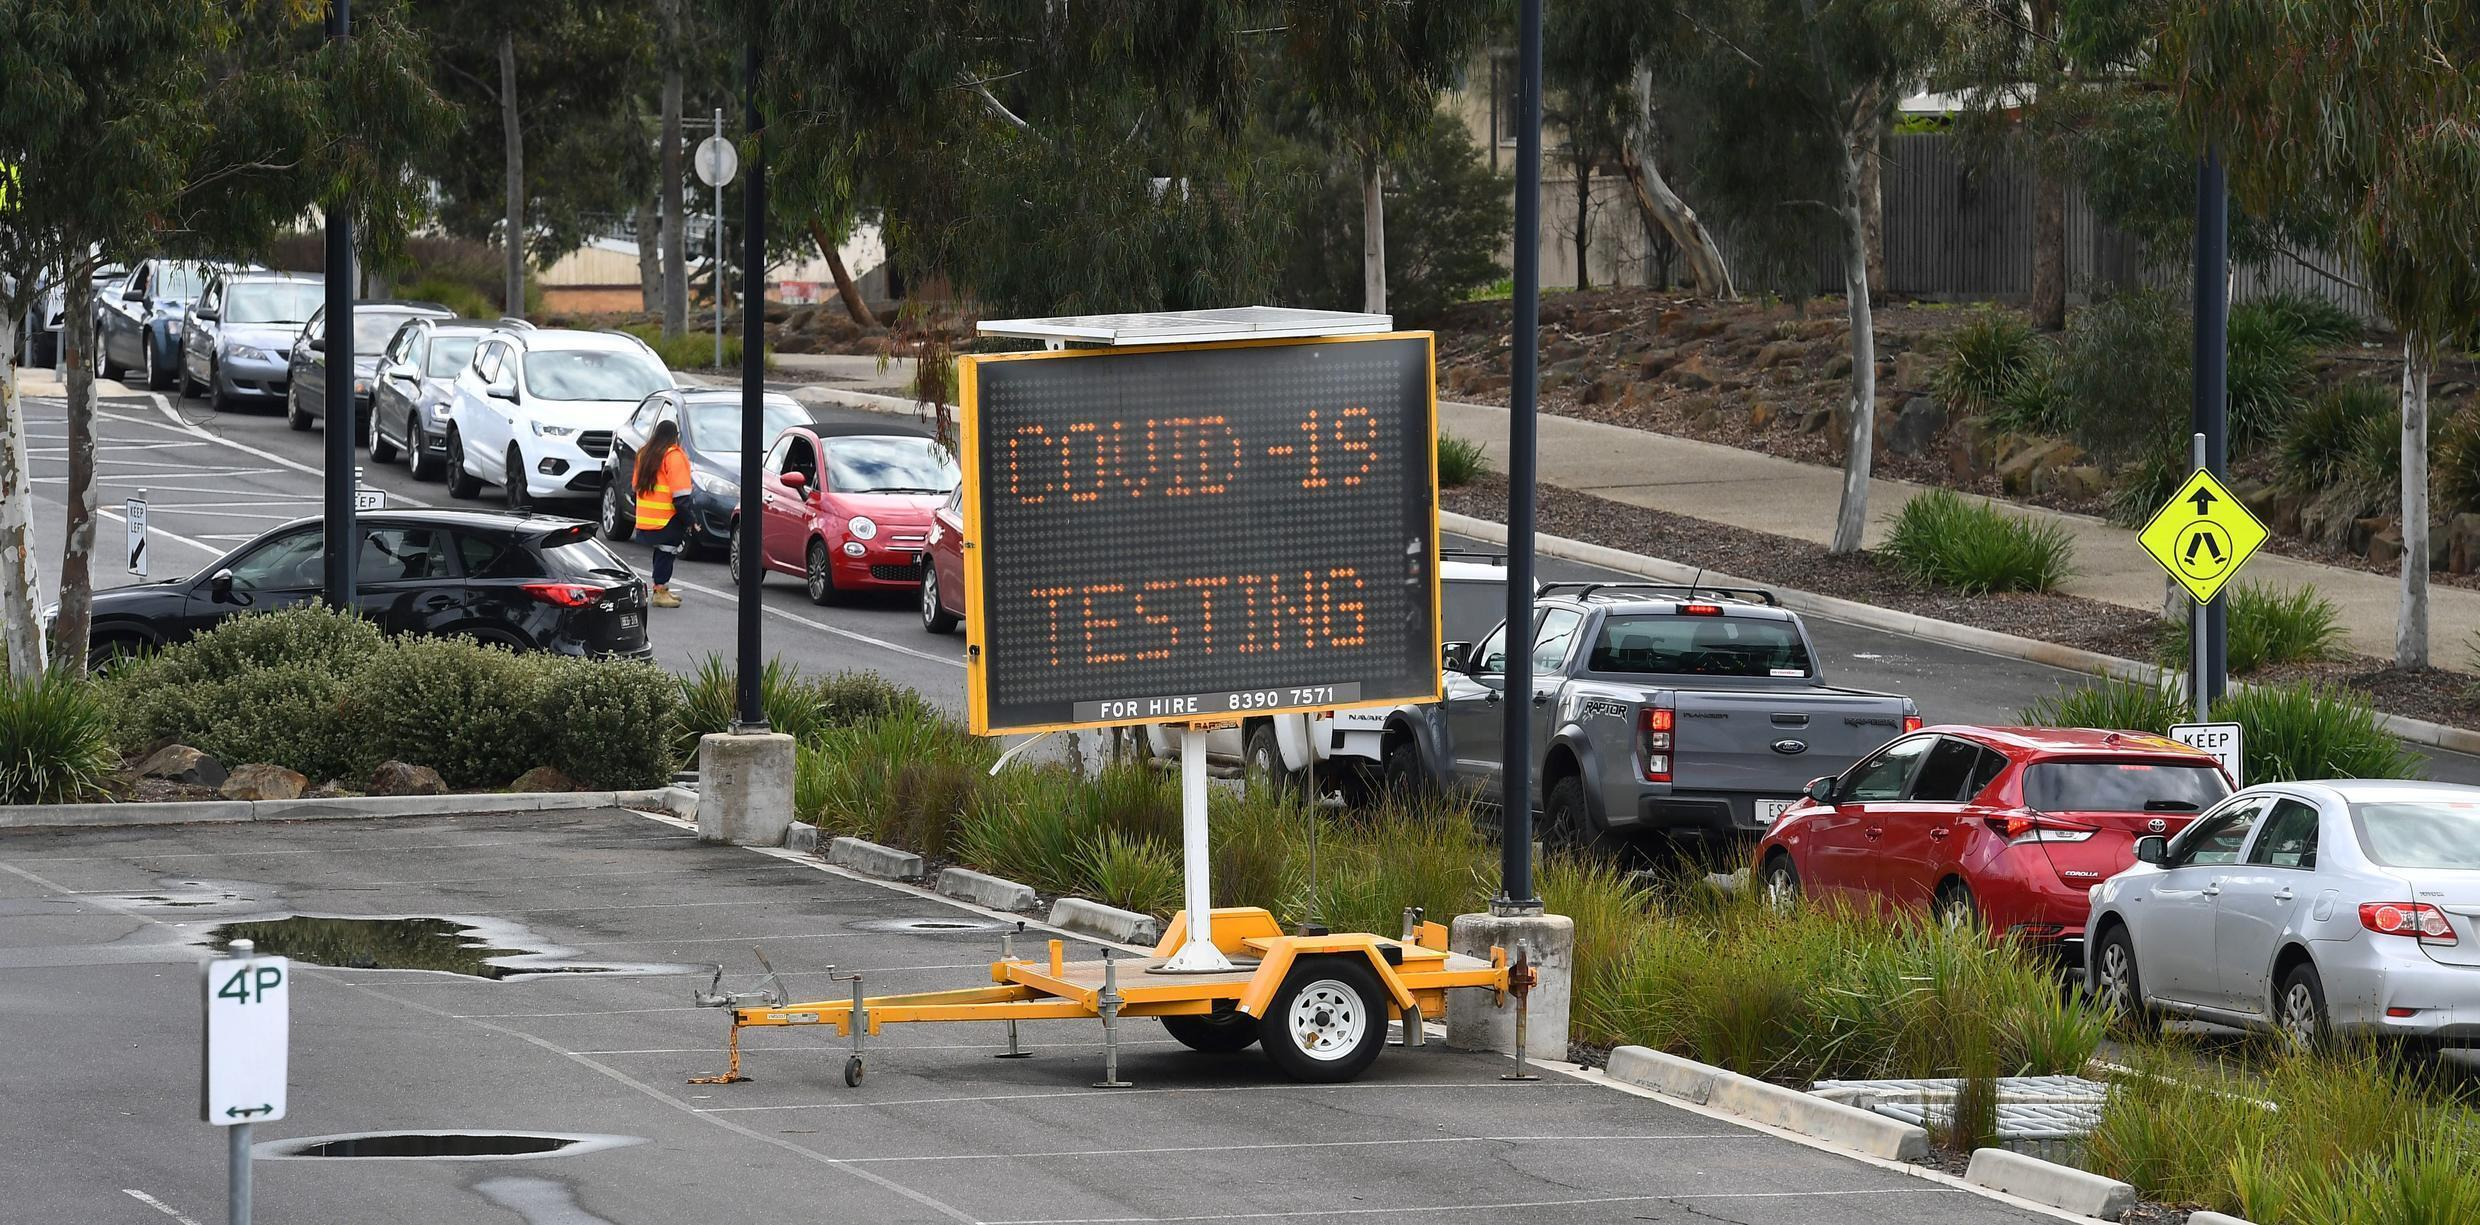 A long queue of cars wait at a drive-through COVID-19 testing site in Melbourne